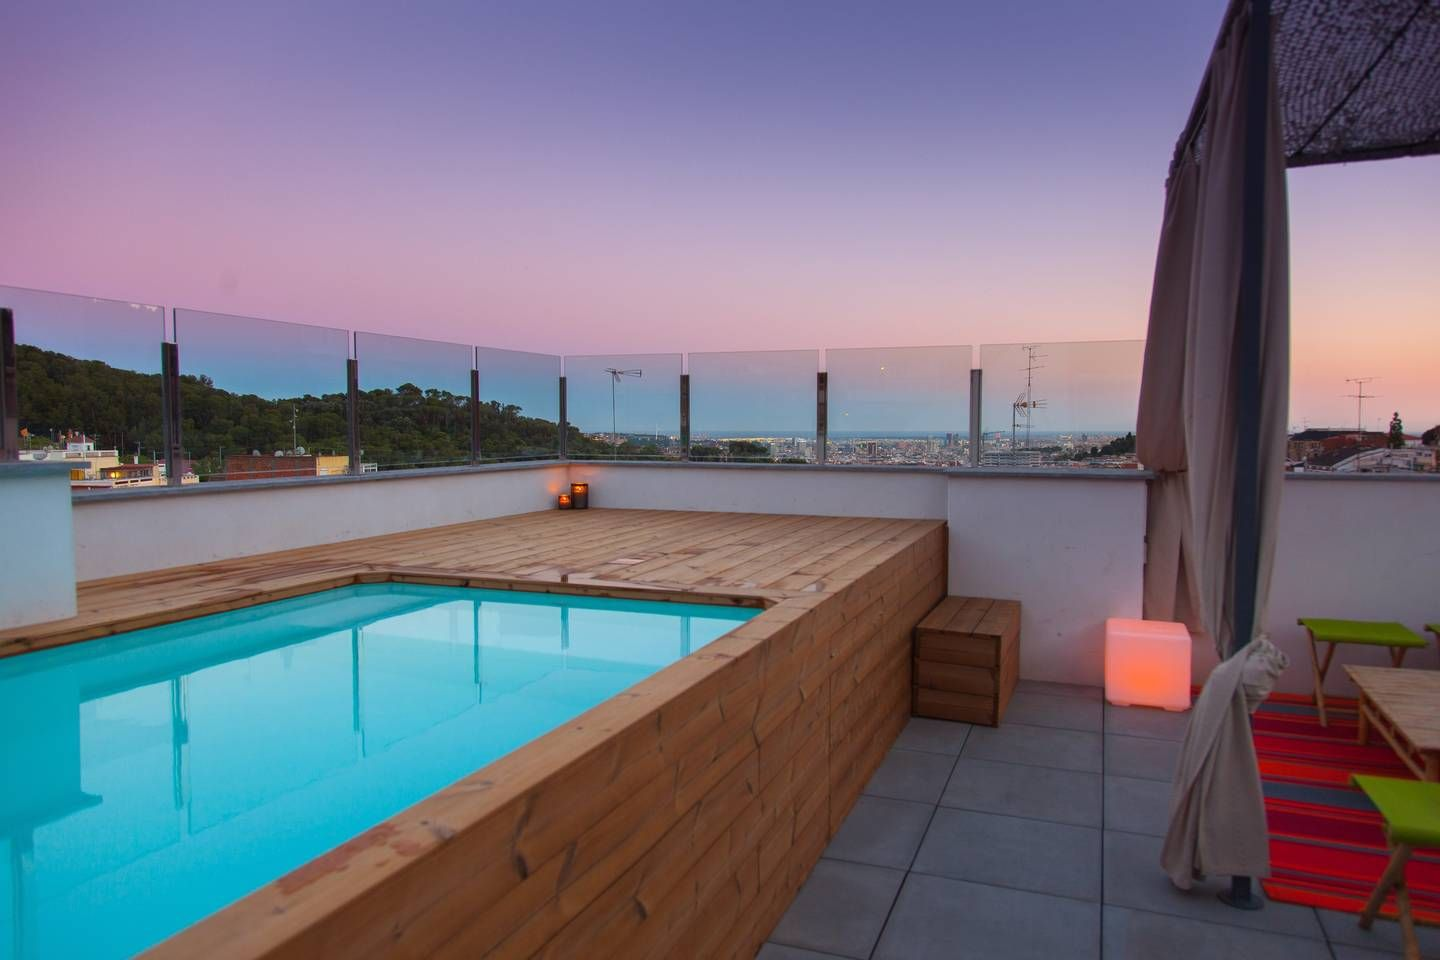 Awesome Private Suites Terrace Pool 17m Center Houses For